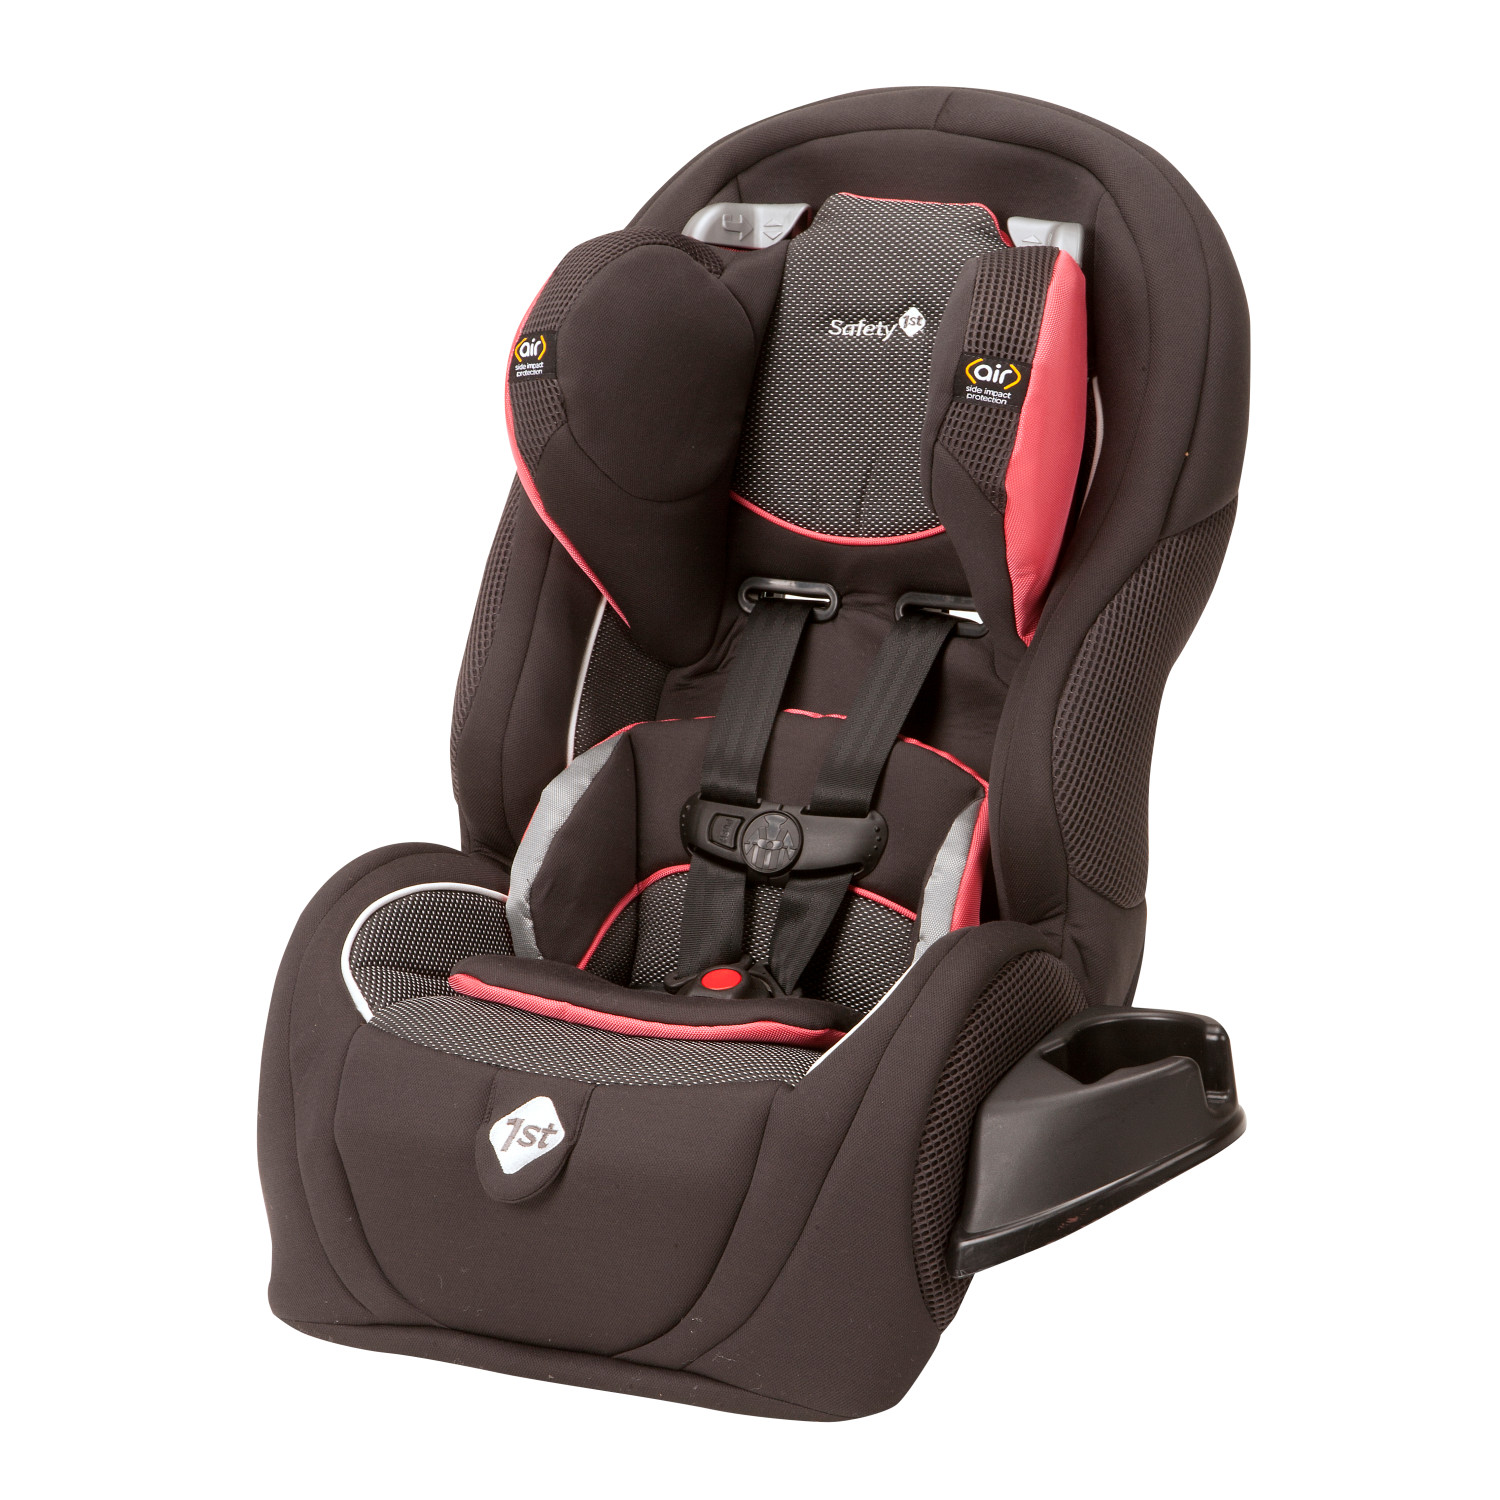 safety 1st complete air 65 convertible car seat. Black Bedroom Furniture Sets. Home Design Ideas